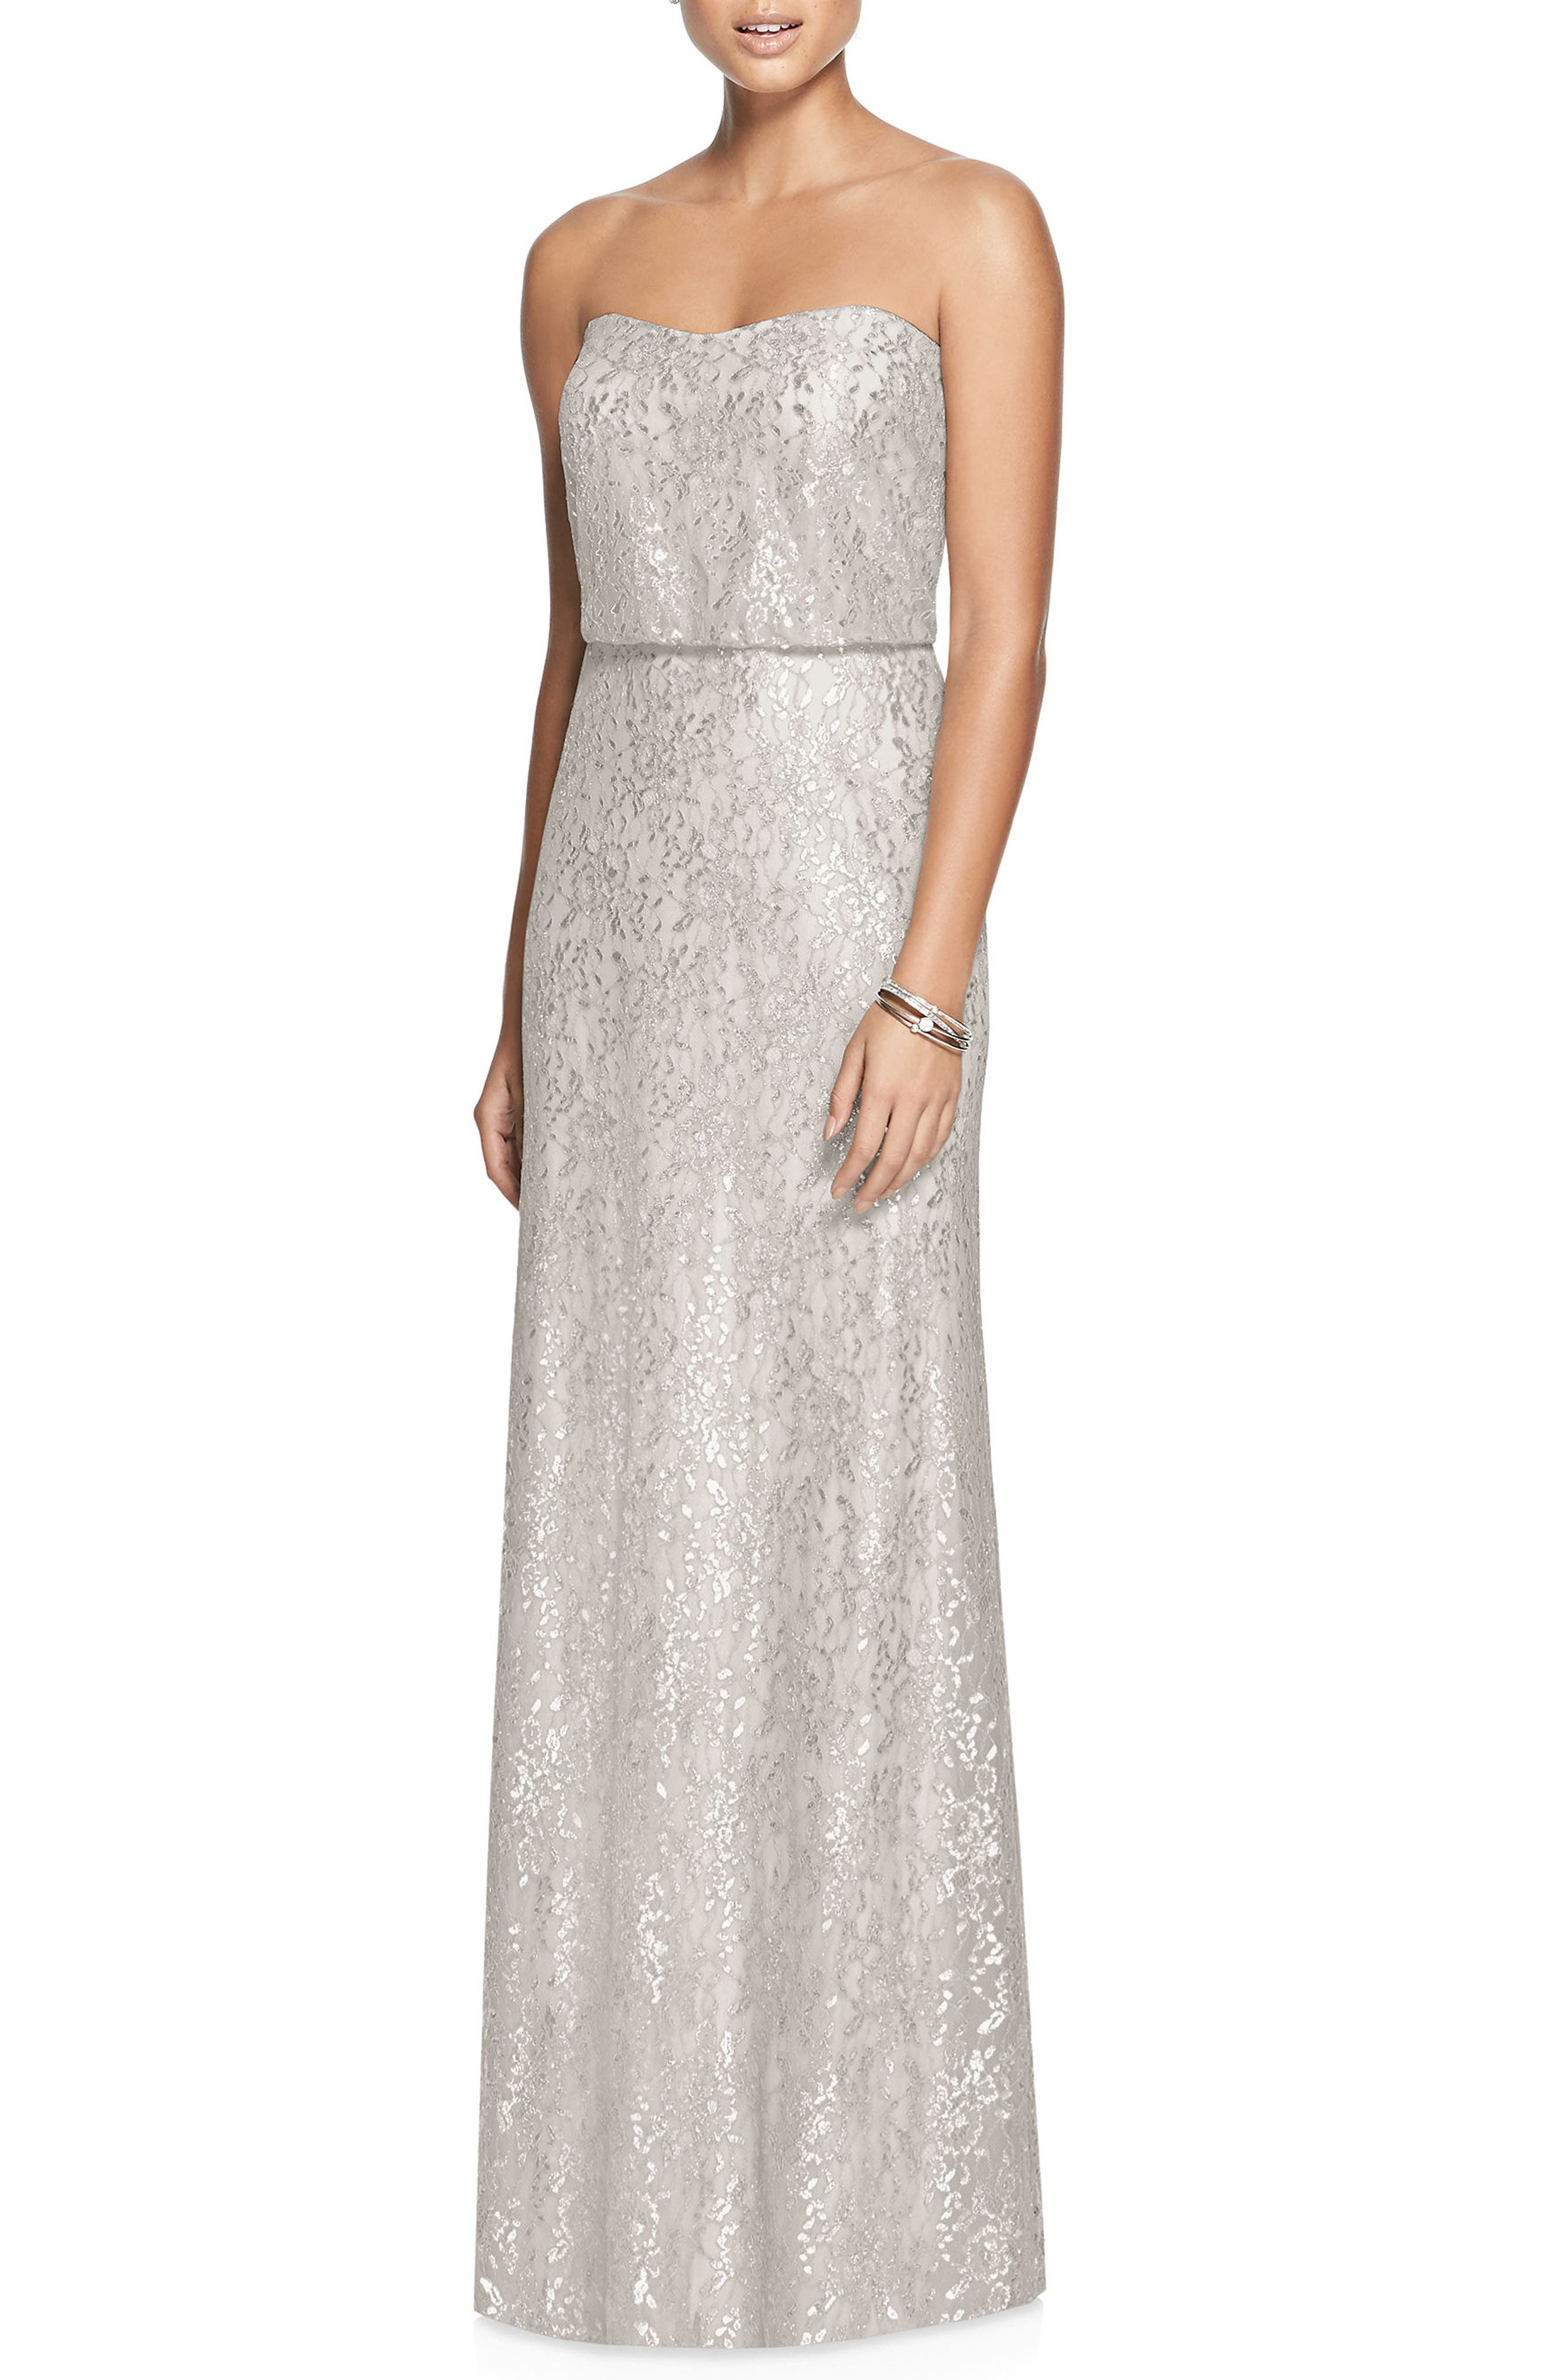 After Six Metallic Lace Strapless Blouson Gown, Metallic